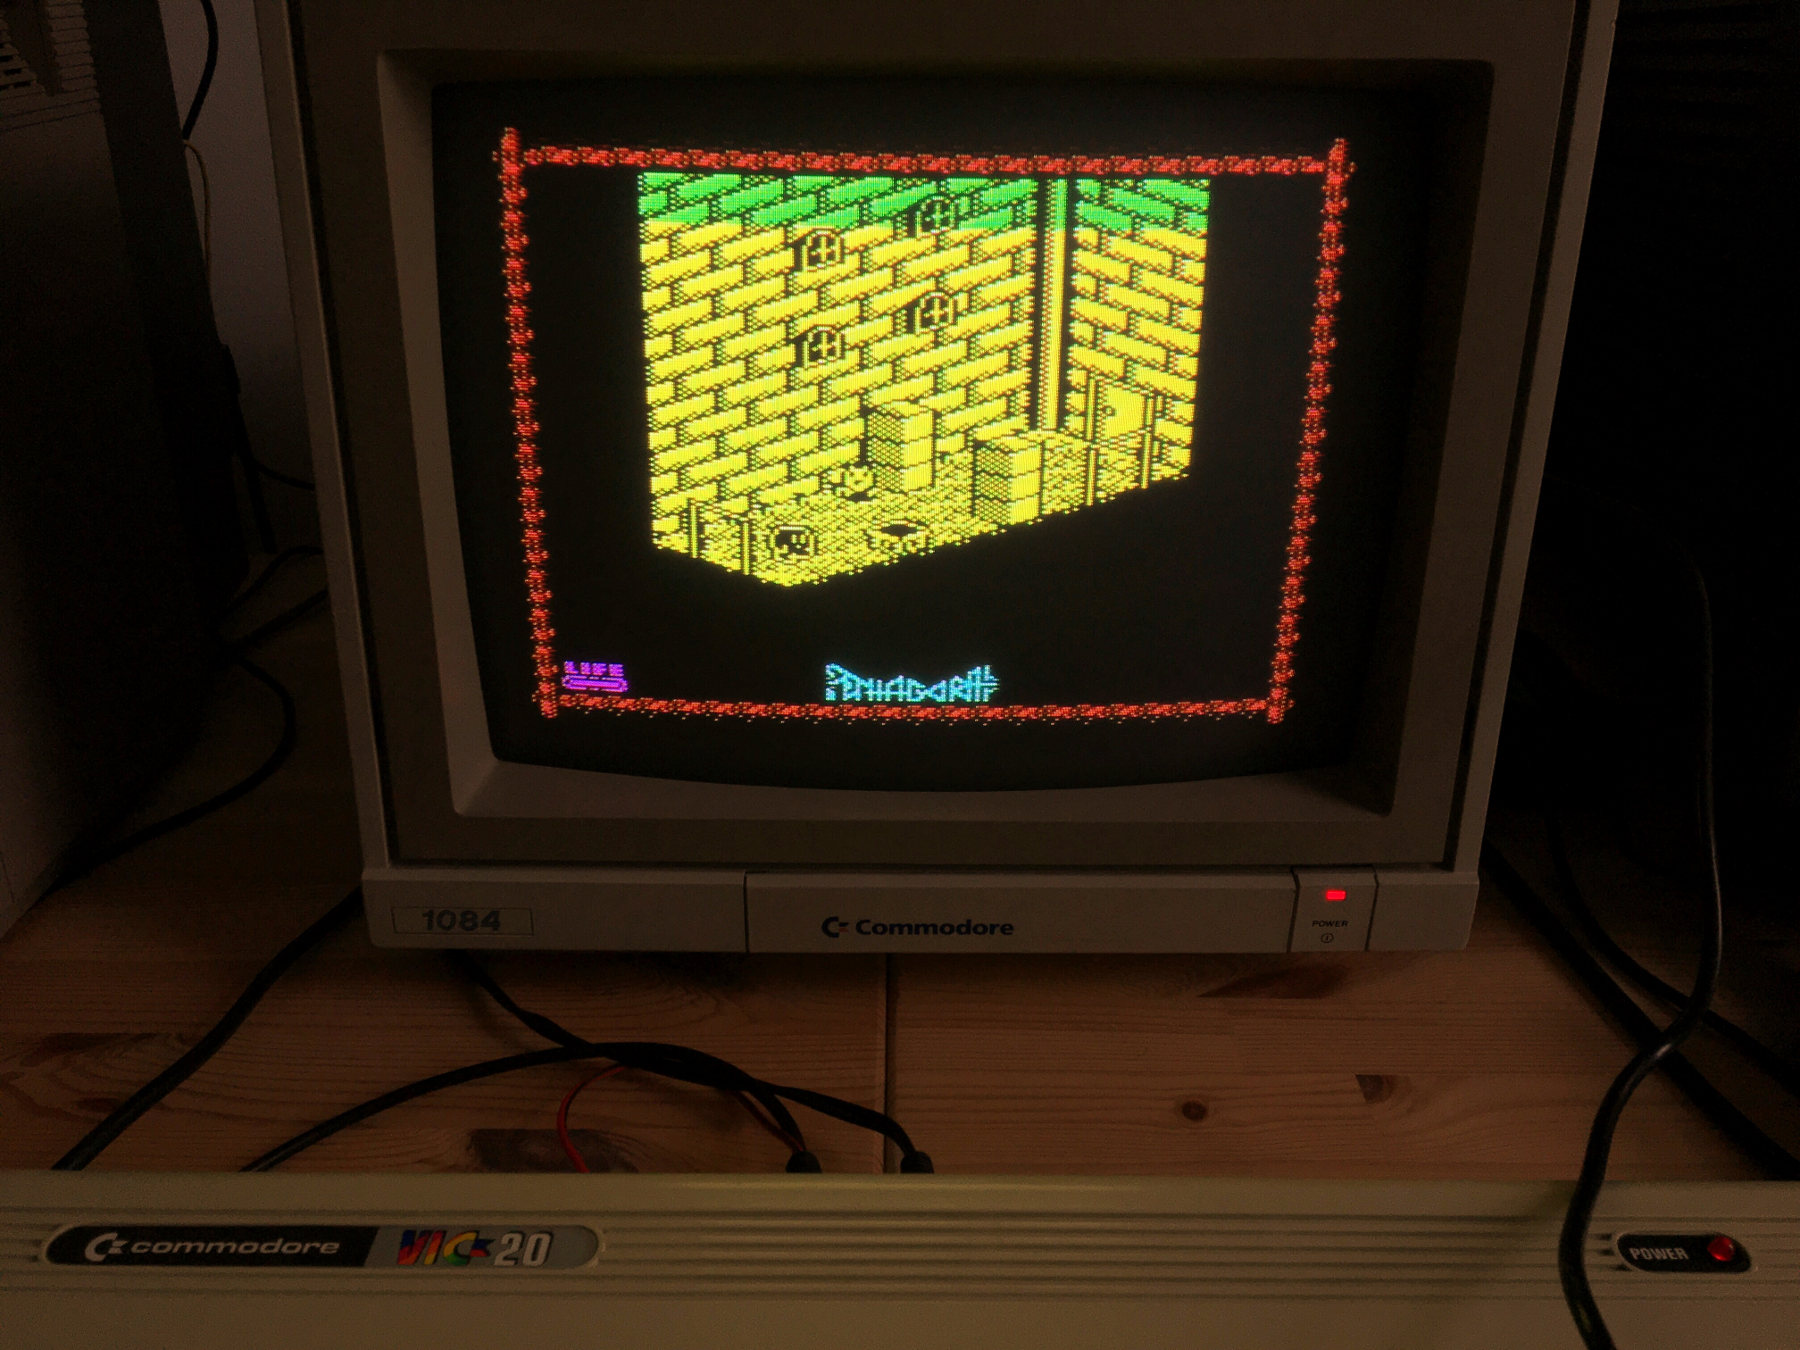 Pentagorat for VIC-20